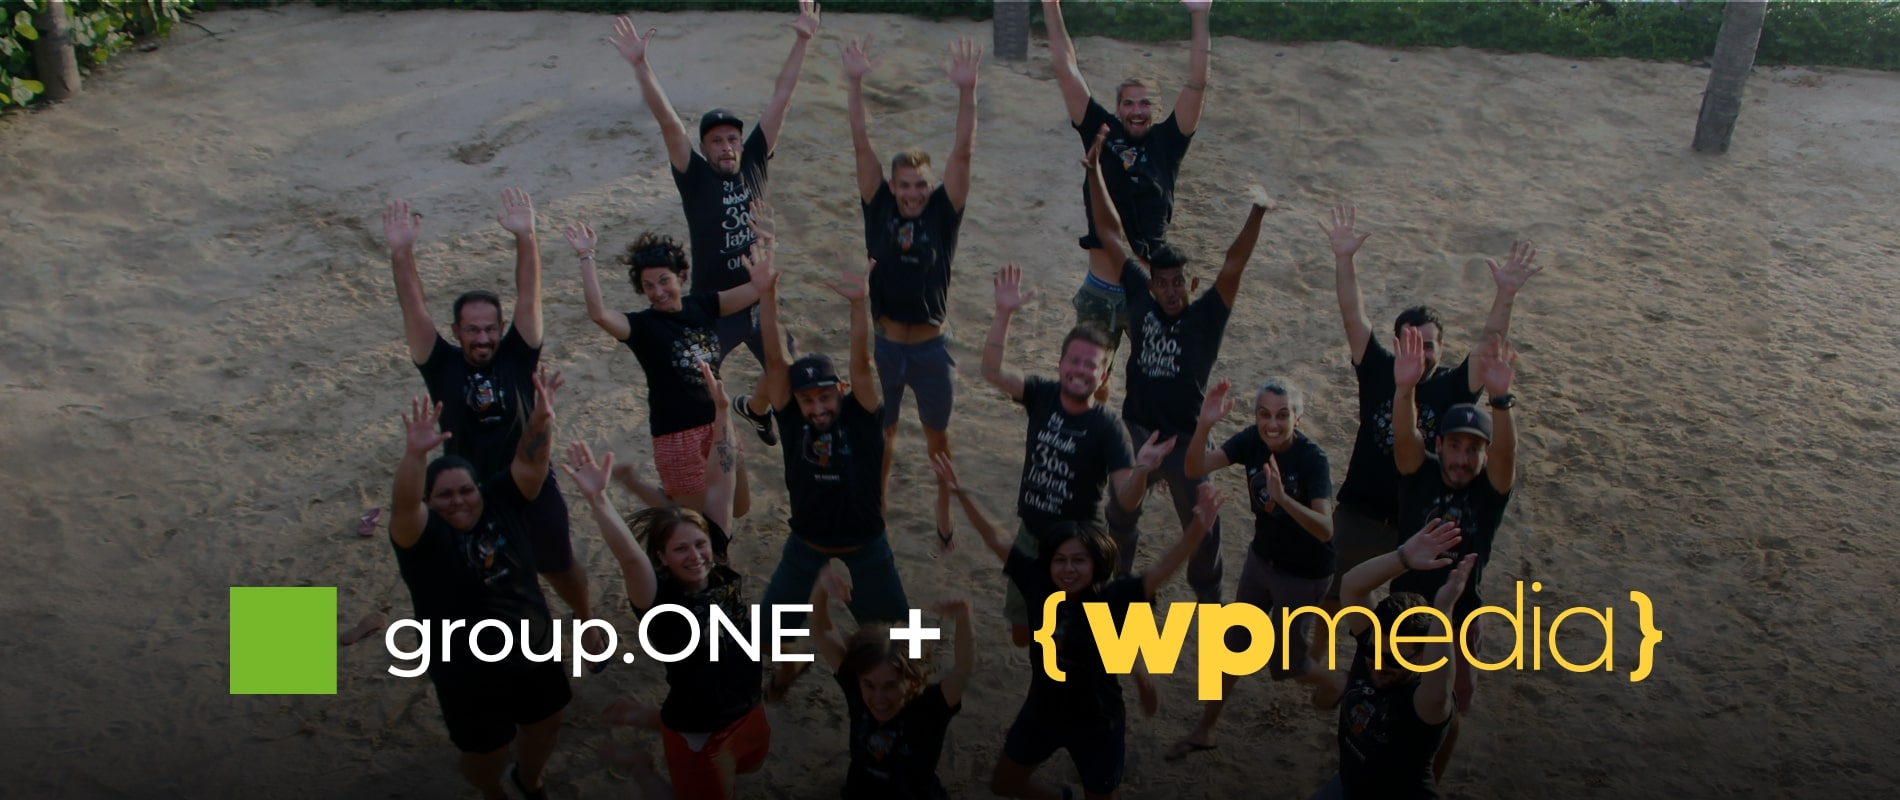 WP Media is joining group ONE